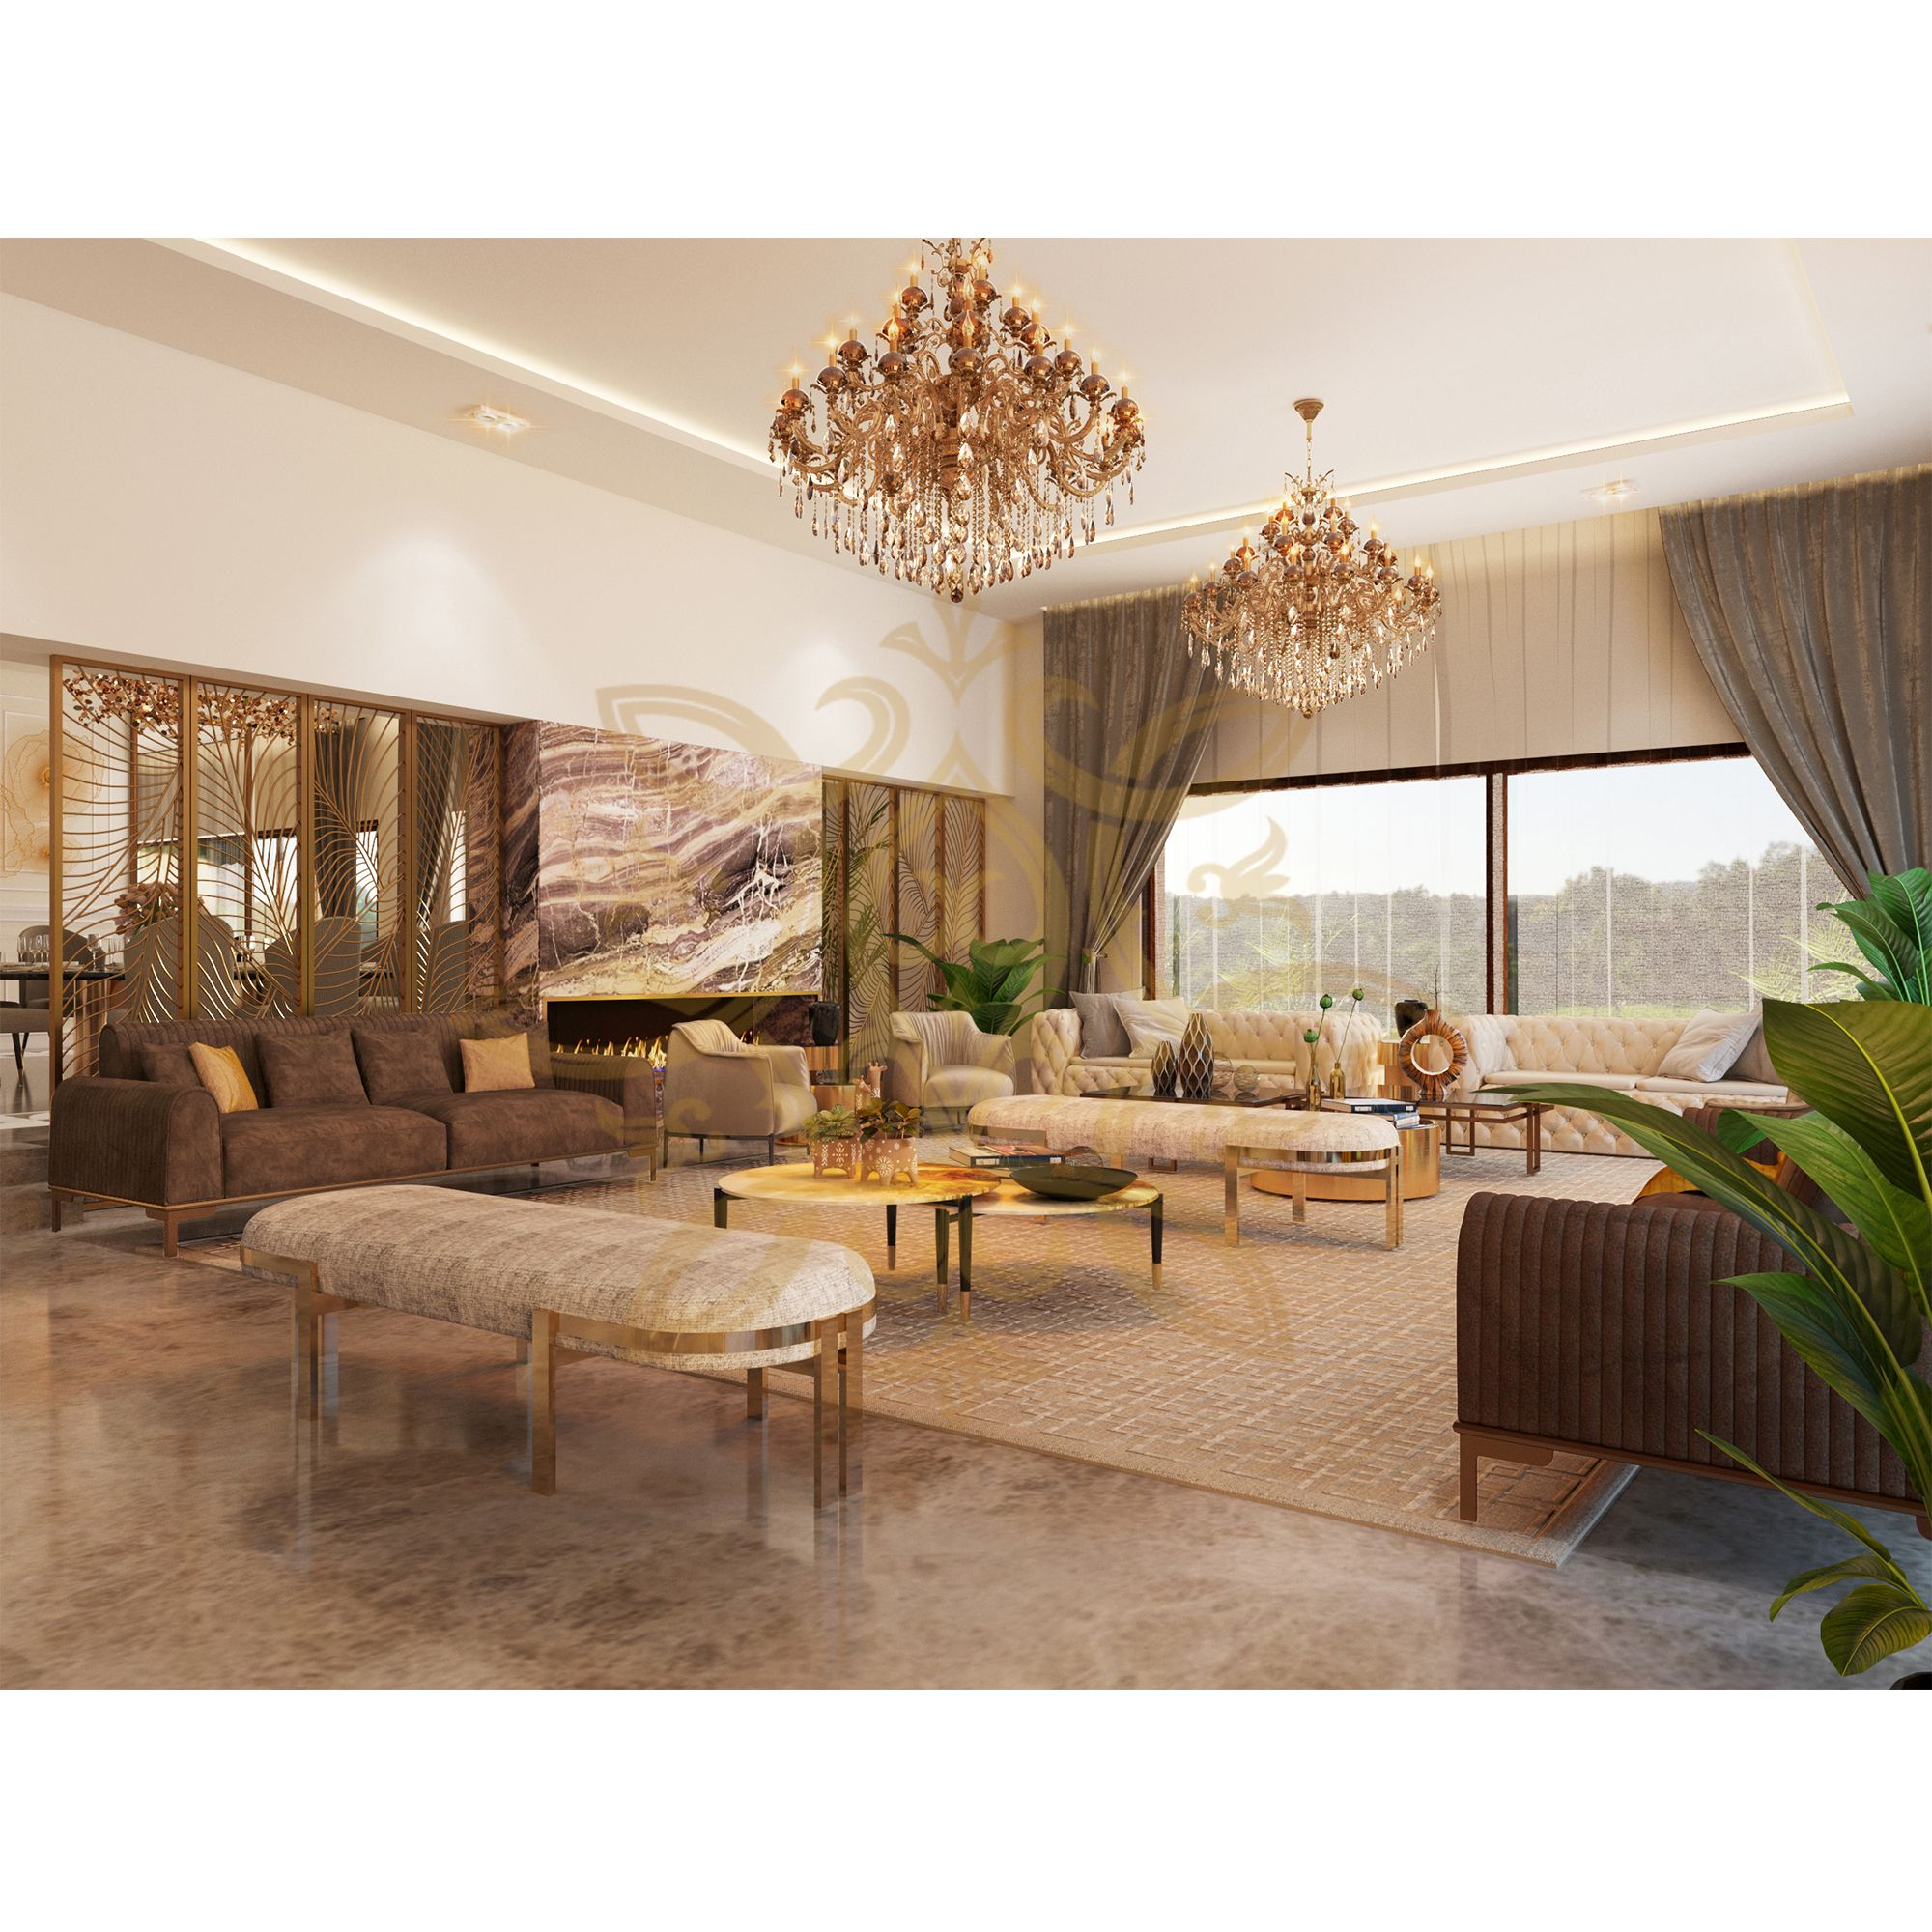 Take In The Luxurious View Of This Opulent Living Room With Lavish